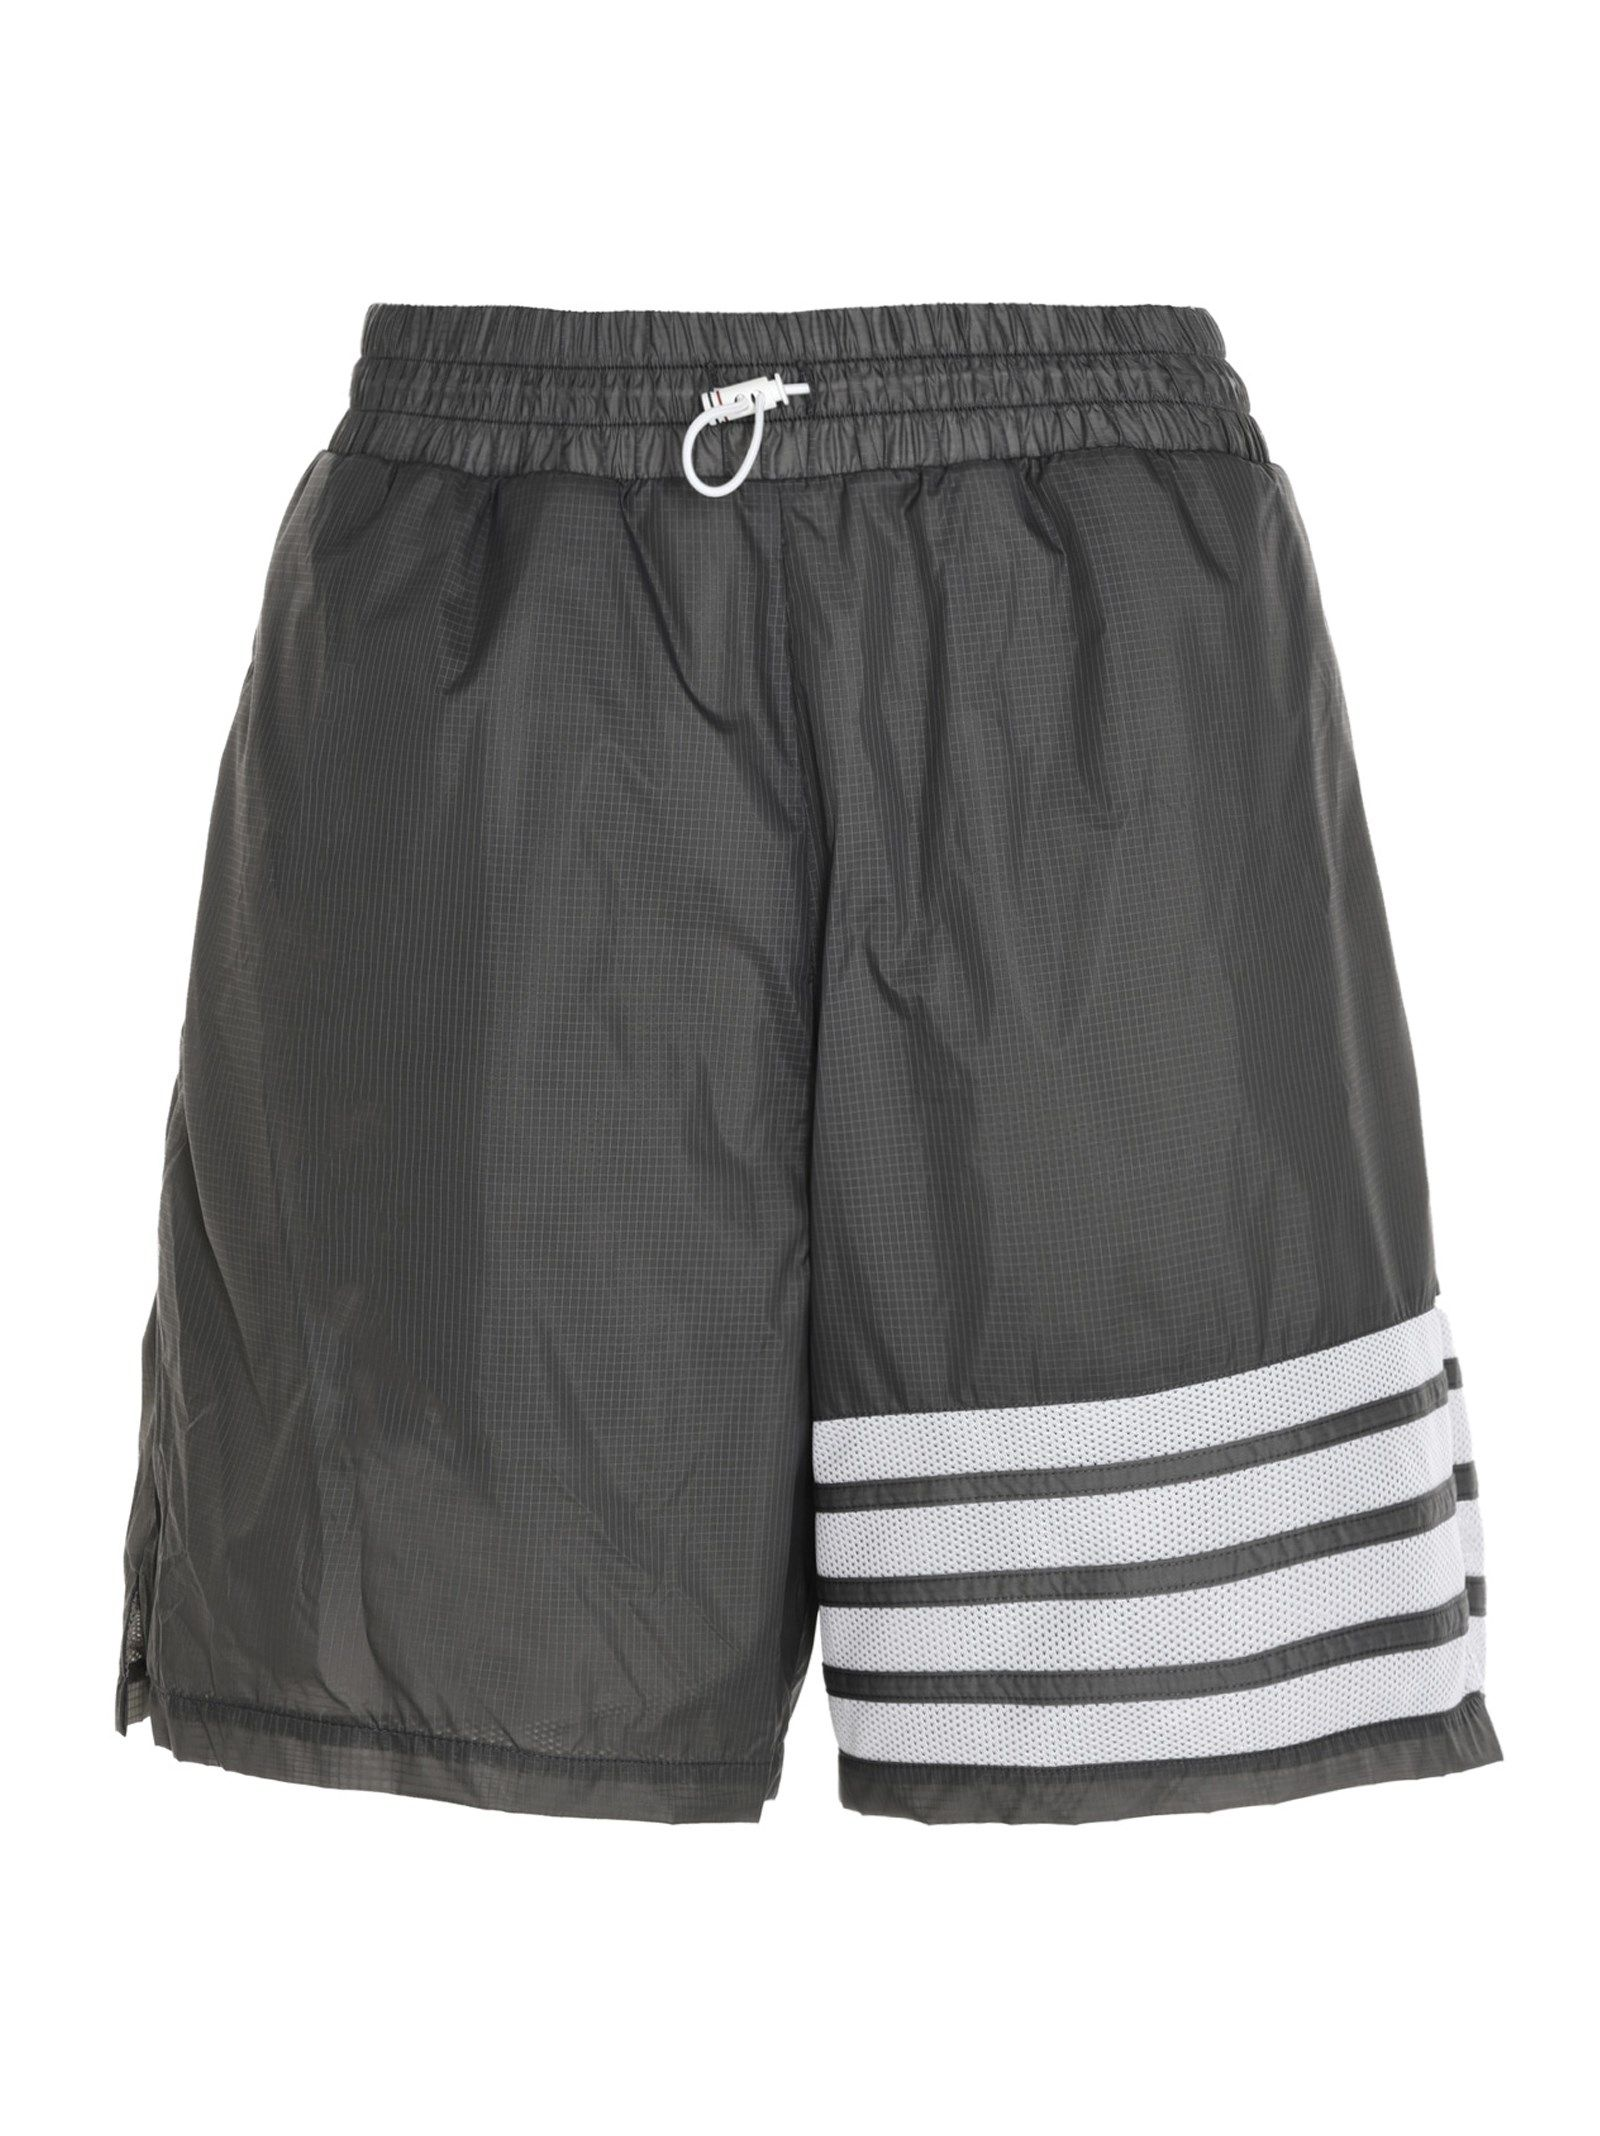 Thom Browne Shorts THOM BROWNE MEN'S MJQ107A06859045 GREY OTHER MATERIALS SHORTS